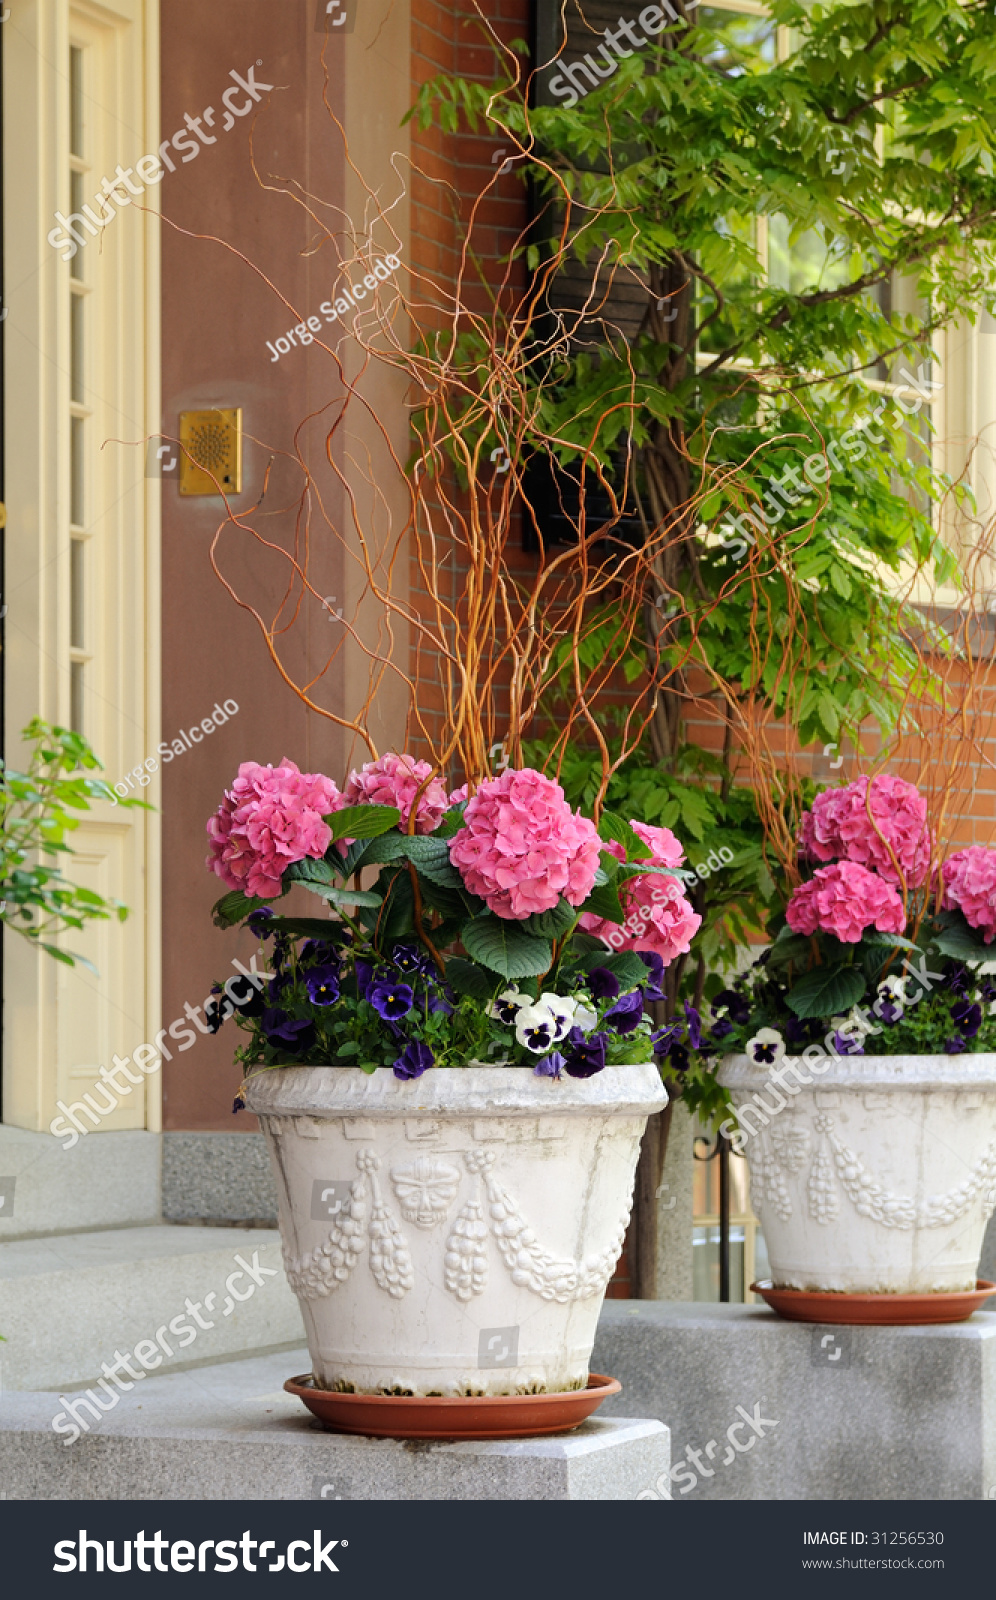 Elegant Flower Pots With Pink Hidrangea Pansies And Harry